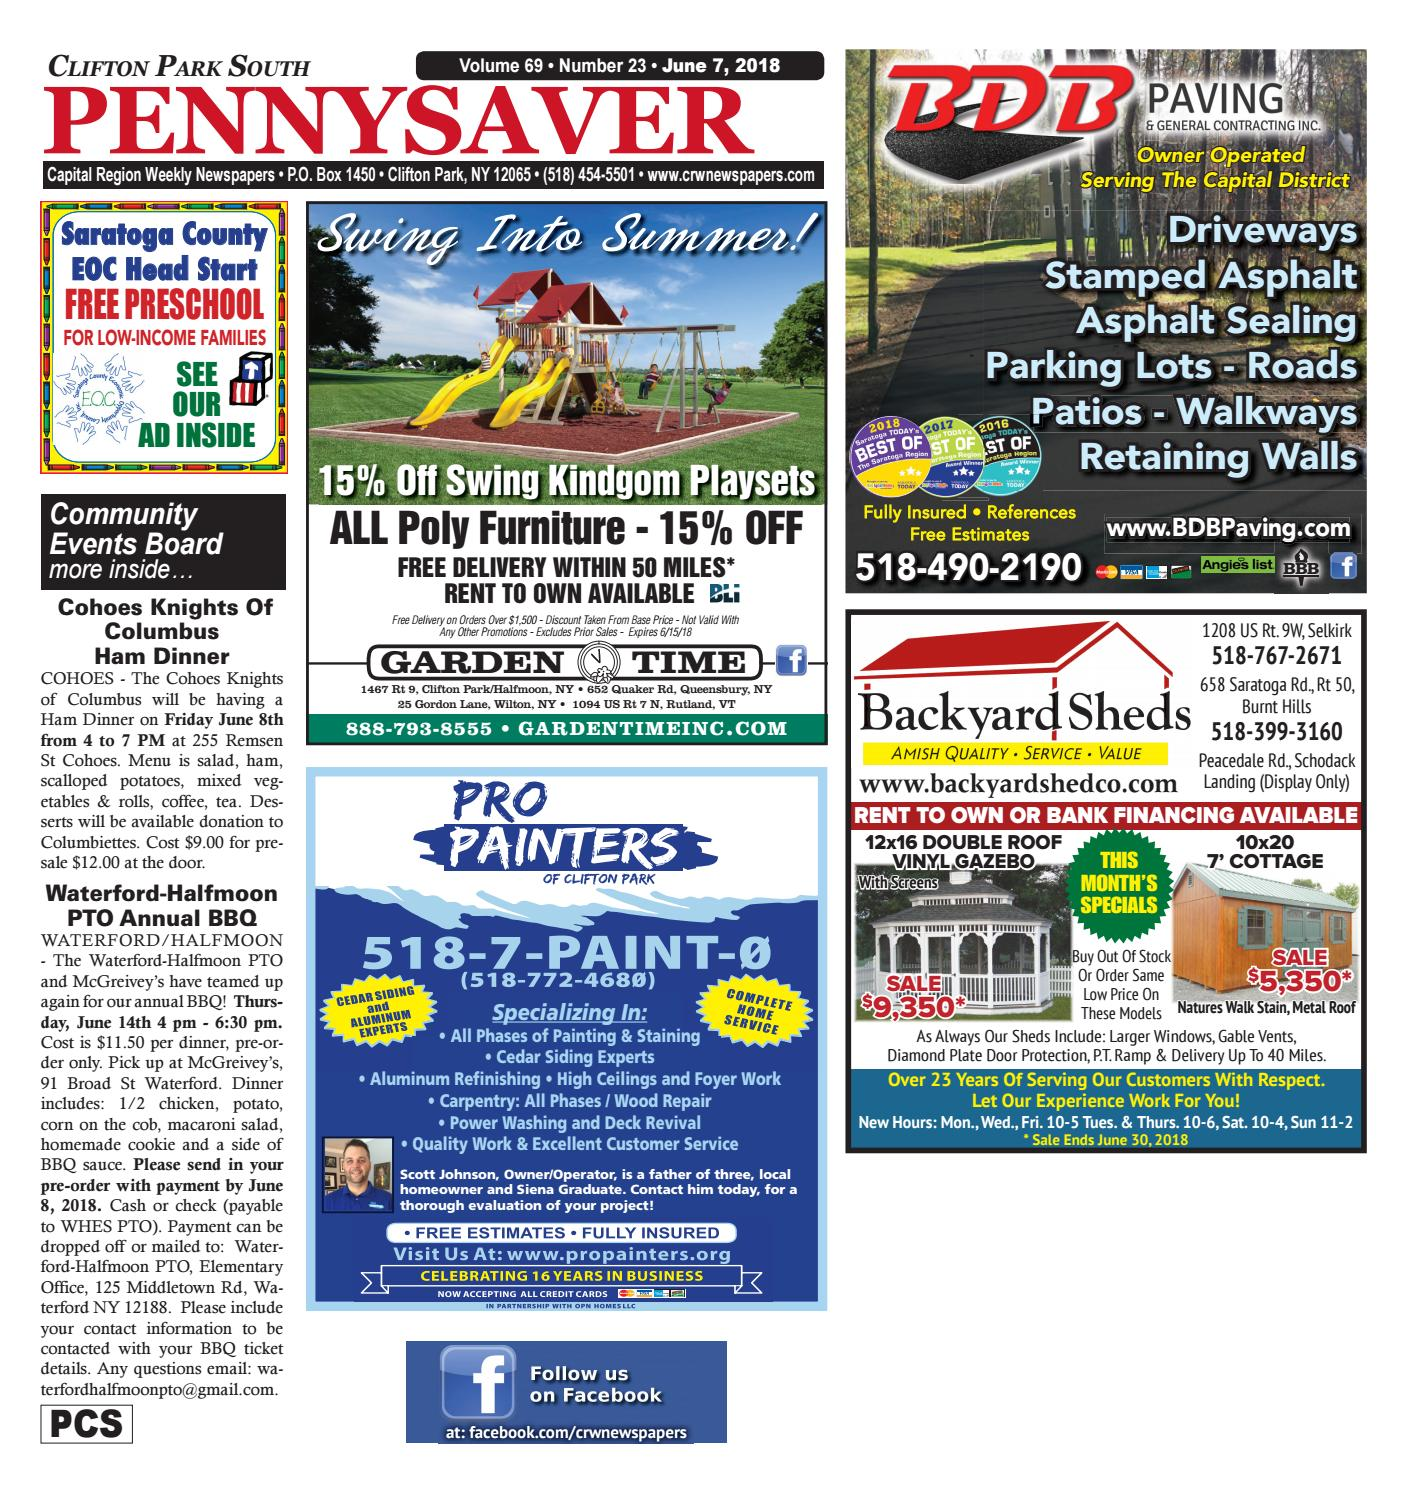 Clifton Park South Pennysaver 060718 by Capital Region Weekly ... on